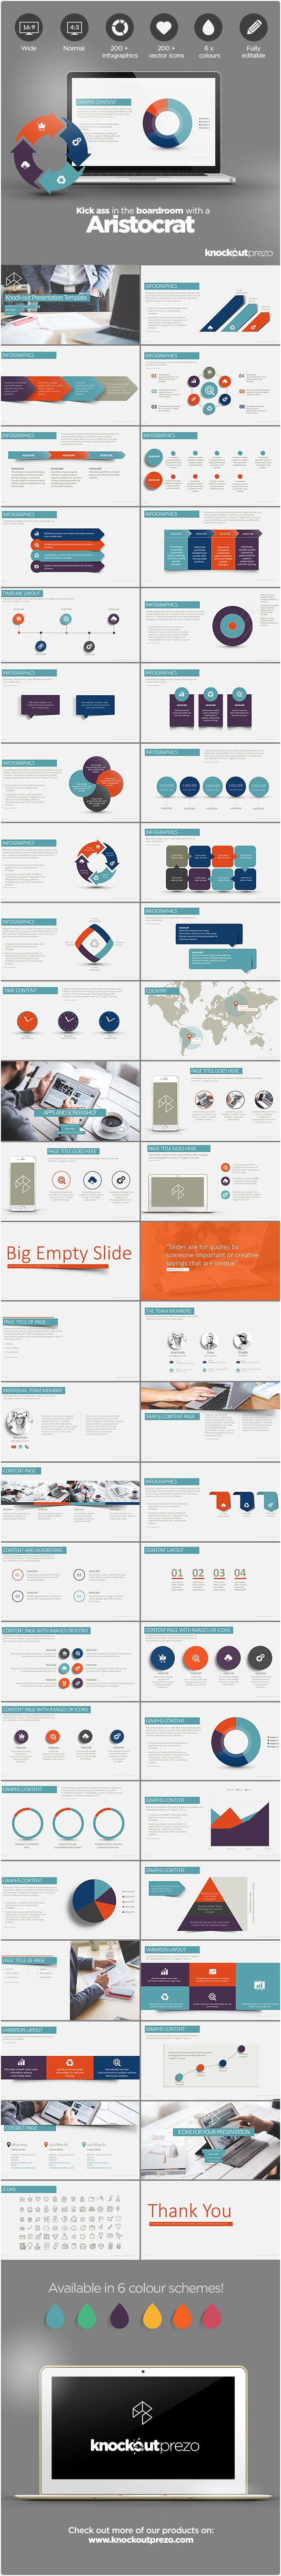 Best Images About Knockout Presentation Templates On